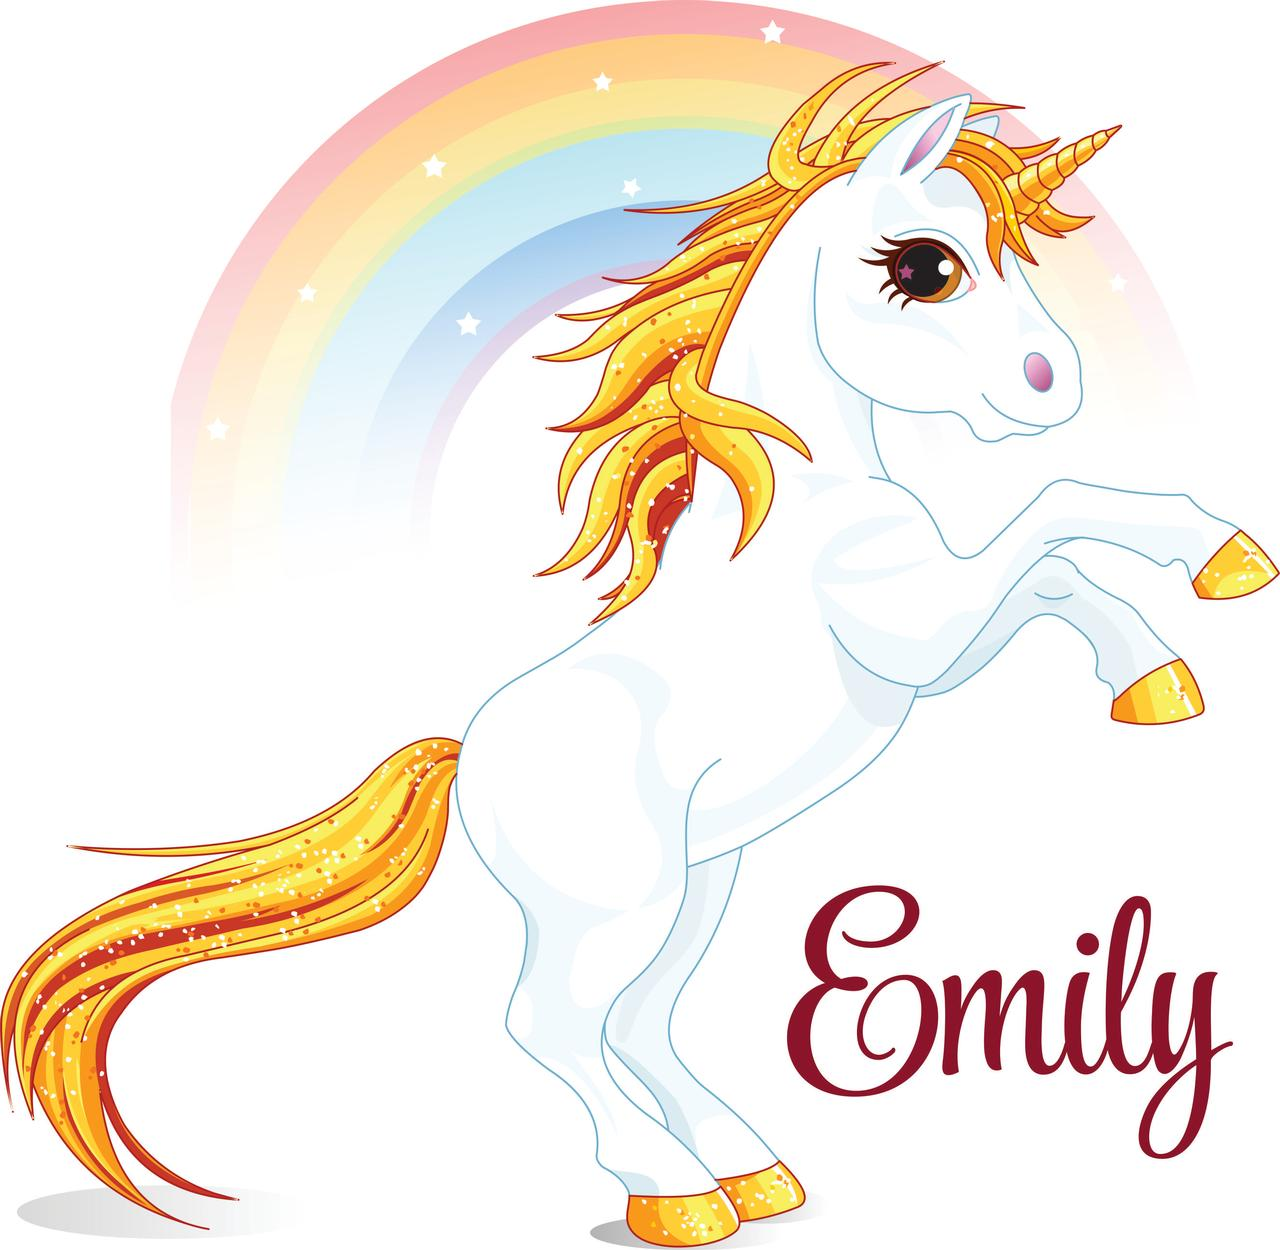 Personalized Name Vinyl Decal Sticker Custom Initial Wall Art Personalization Decor Girls Unicorn Colorful Rainbow Magical Fairytale 10 X 10 Inches